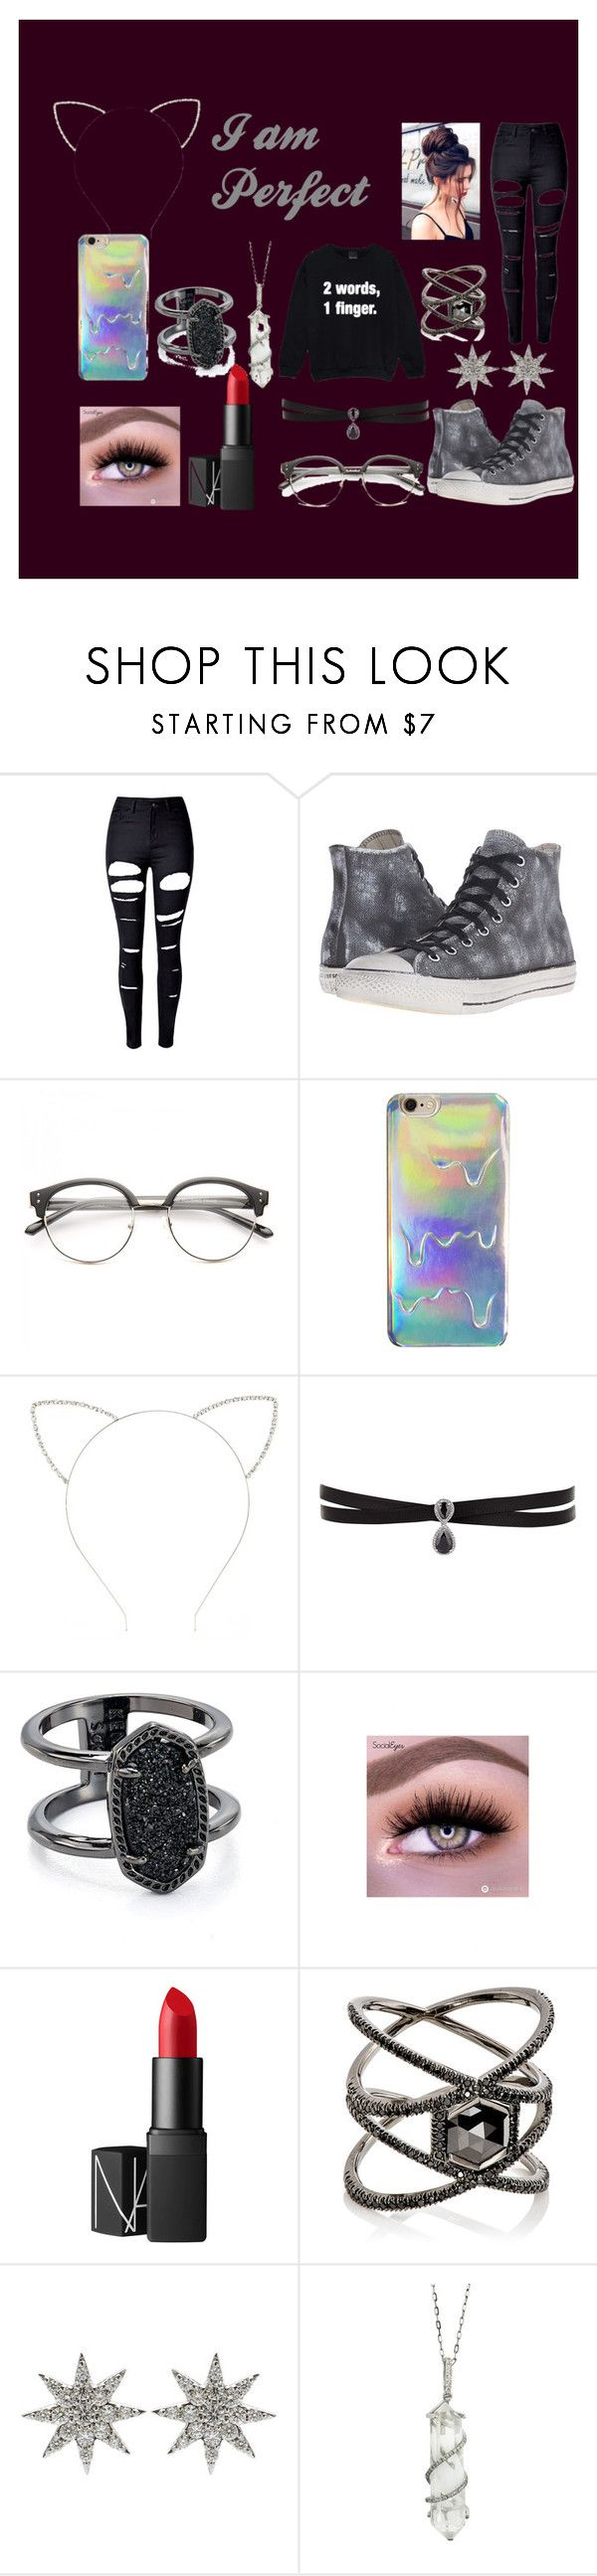 """I am Perfect"" by x-emily-herondale-x ❤ liked on Polyvore featuring WithChic, Converse, Forever 21, Fallon, Kendra Scott, NARS Cosmetics, Eva Fehren, Bee Goddess and Sharon Khazzam"